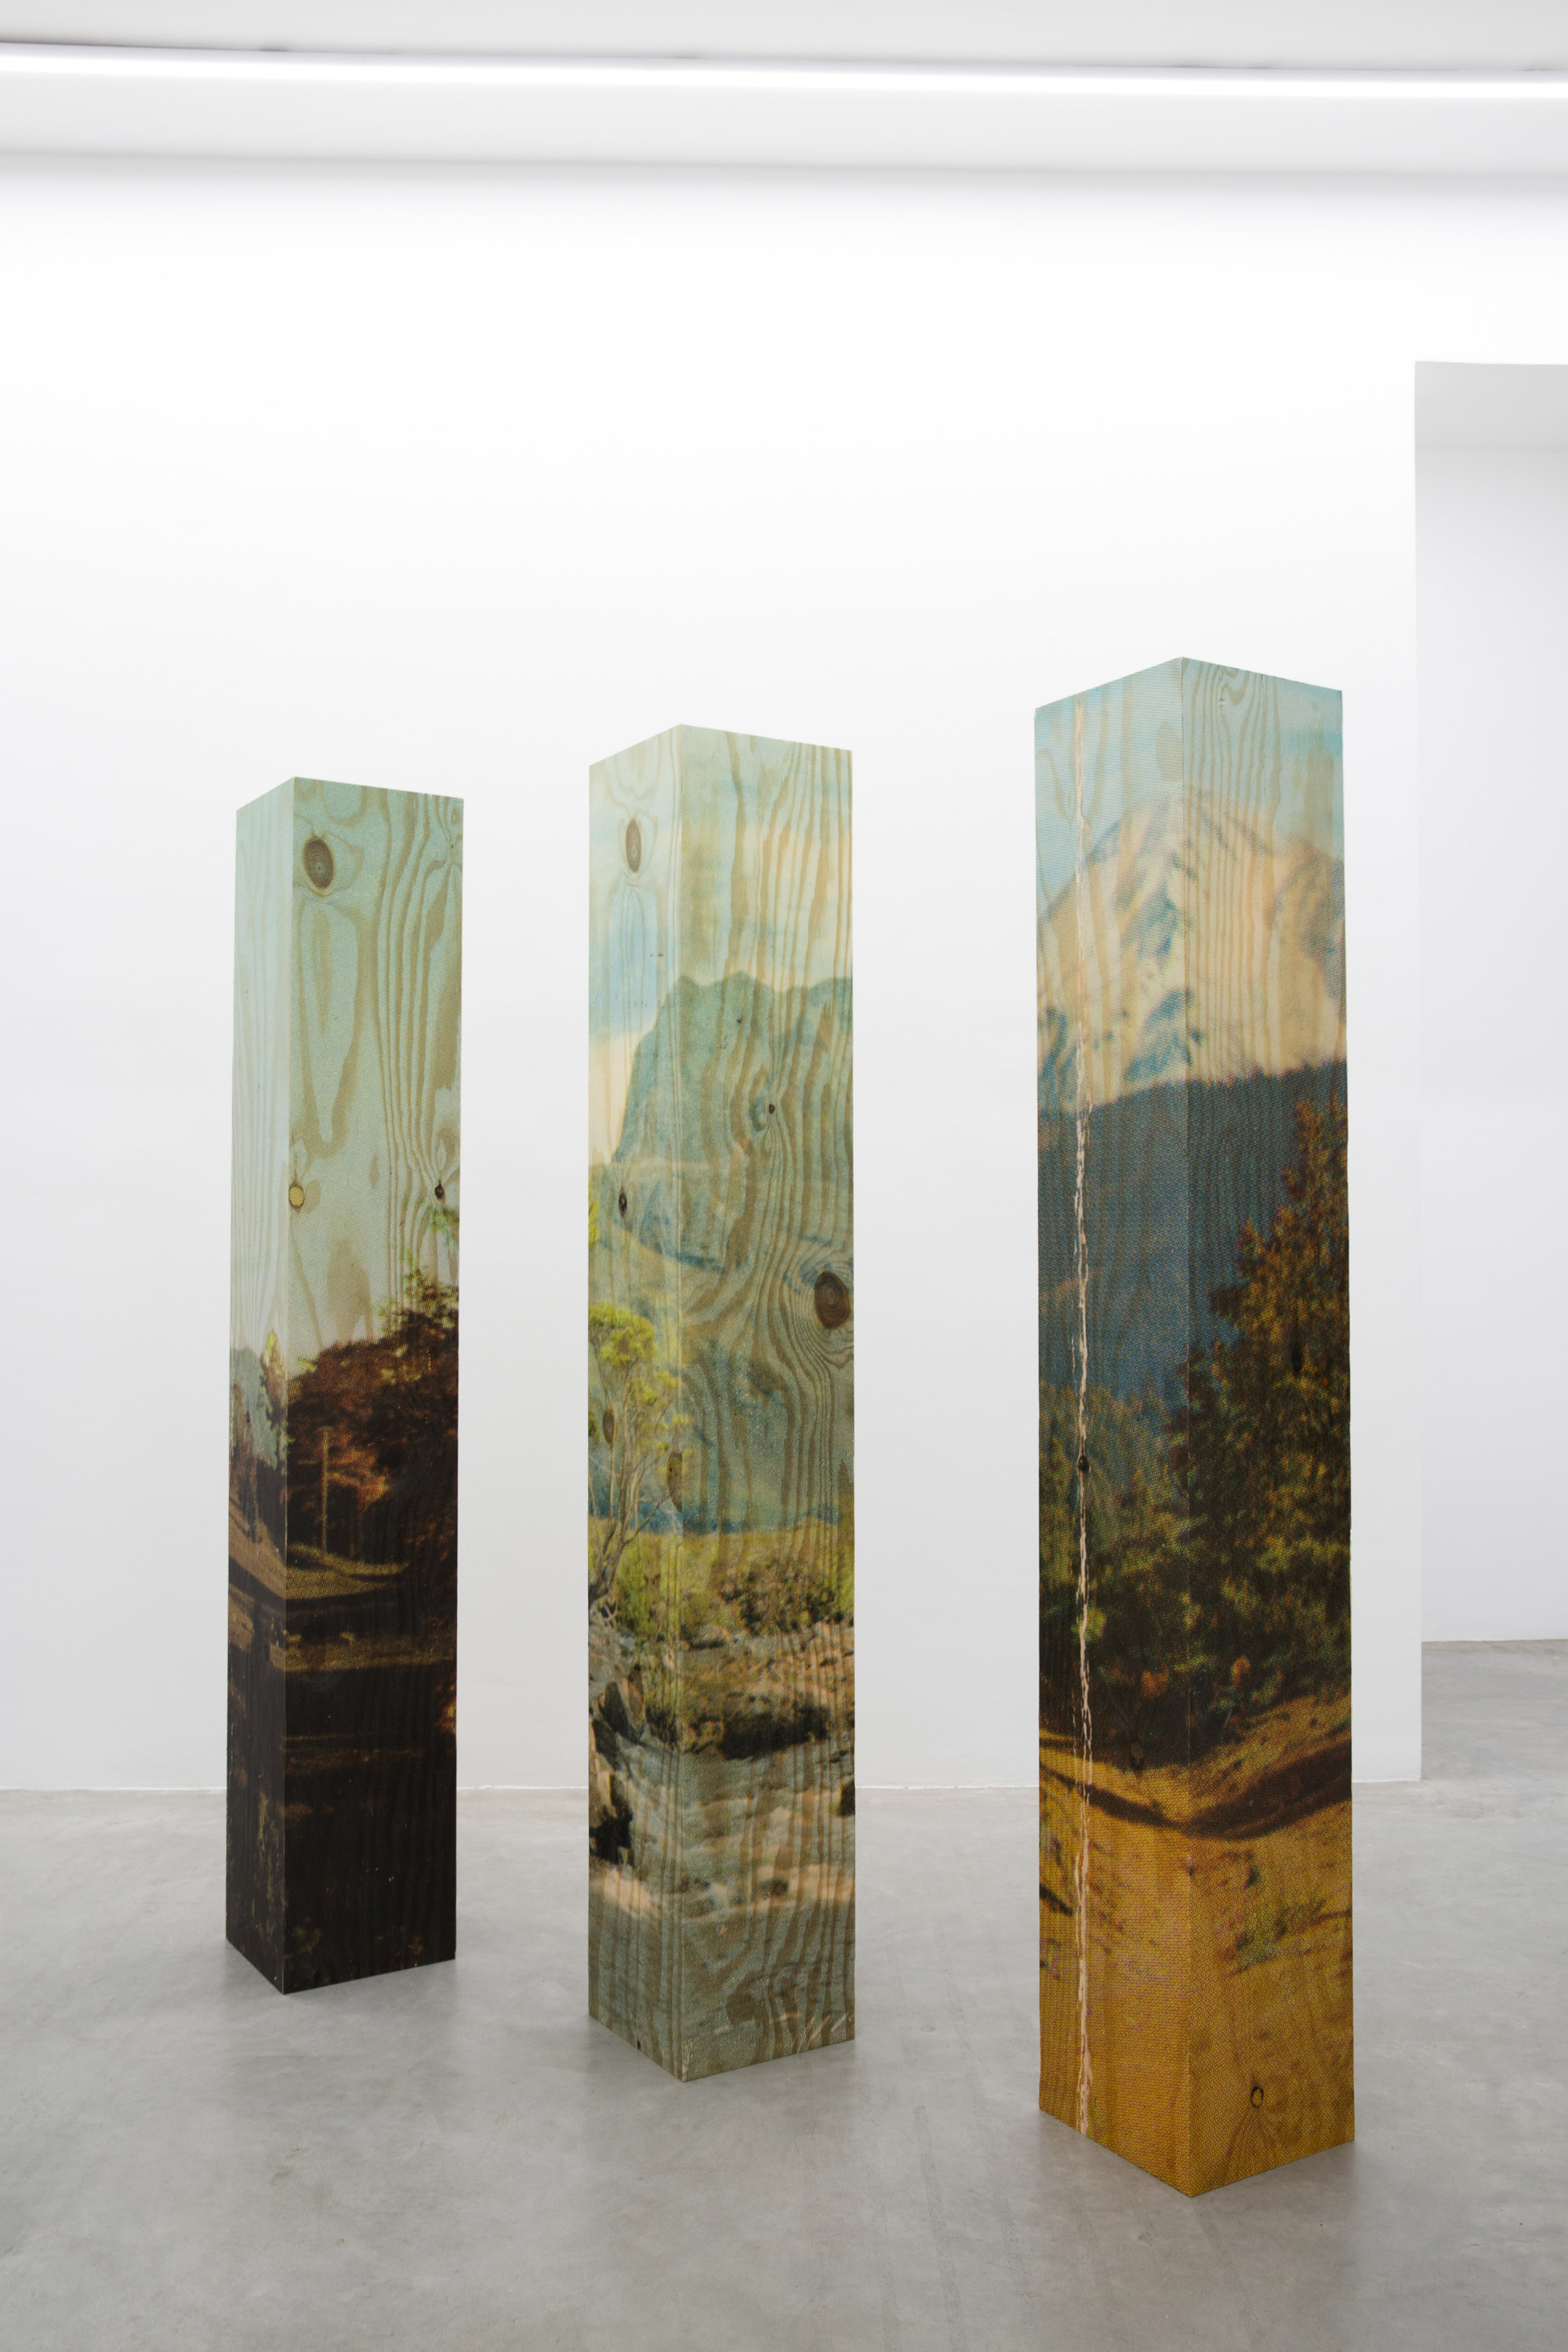 Berndnaut Smilde, Gamut, 2014, inkjet on printed wood, 29 x 29 x 190 cm each